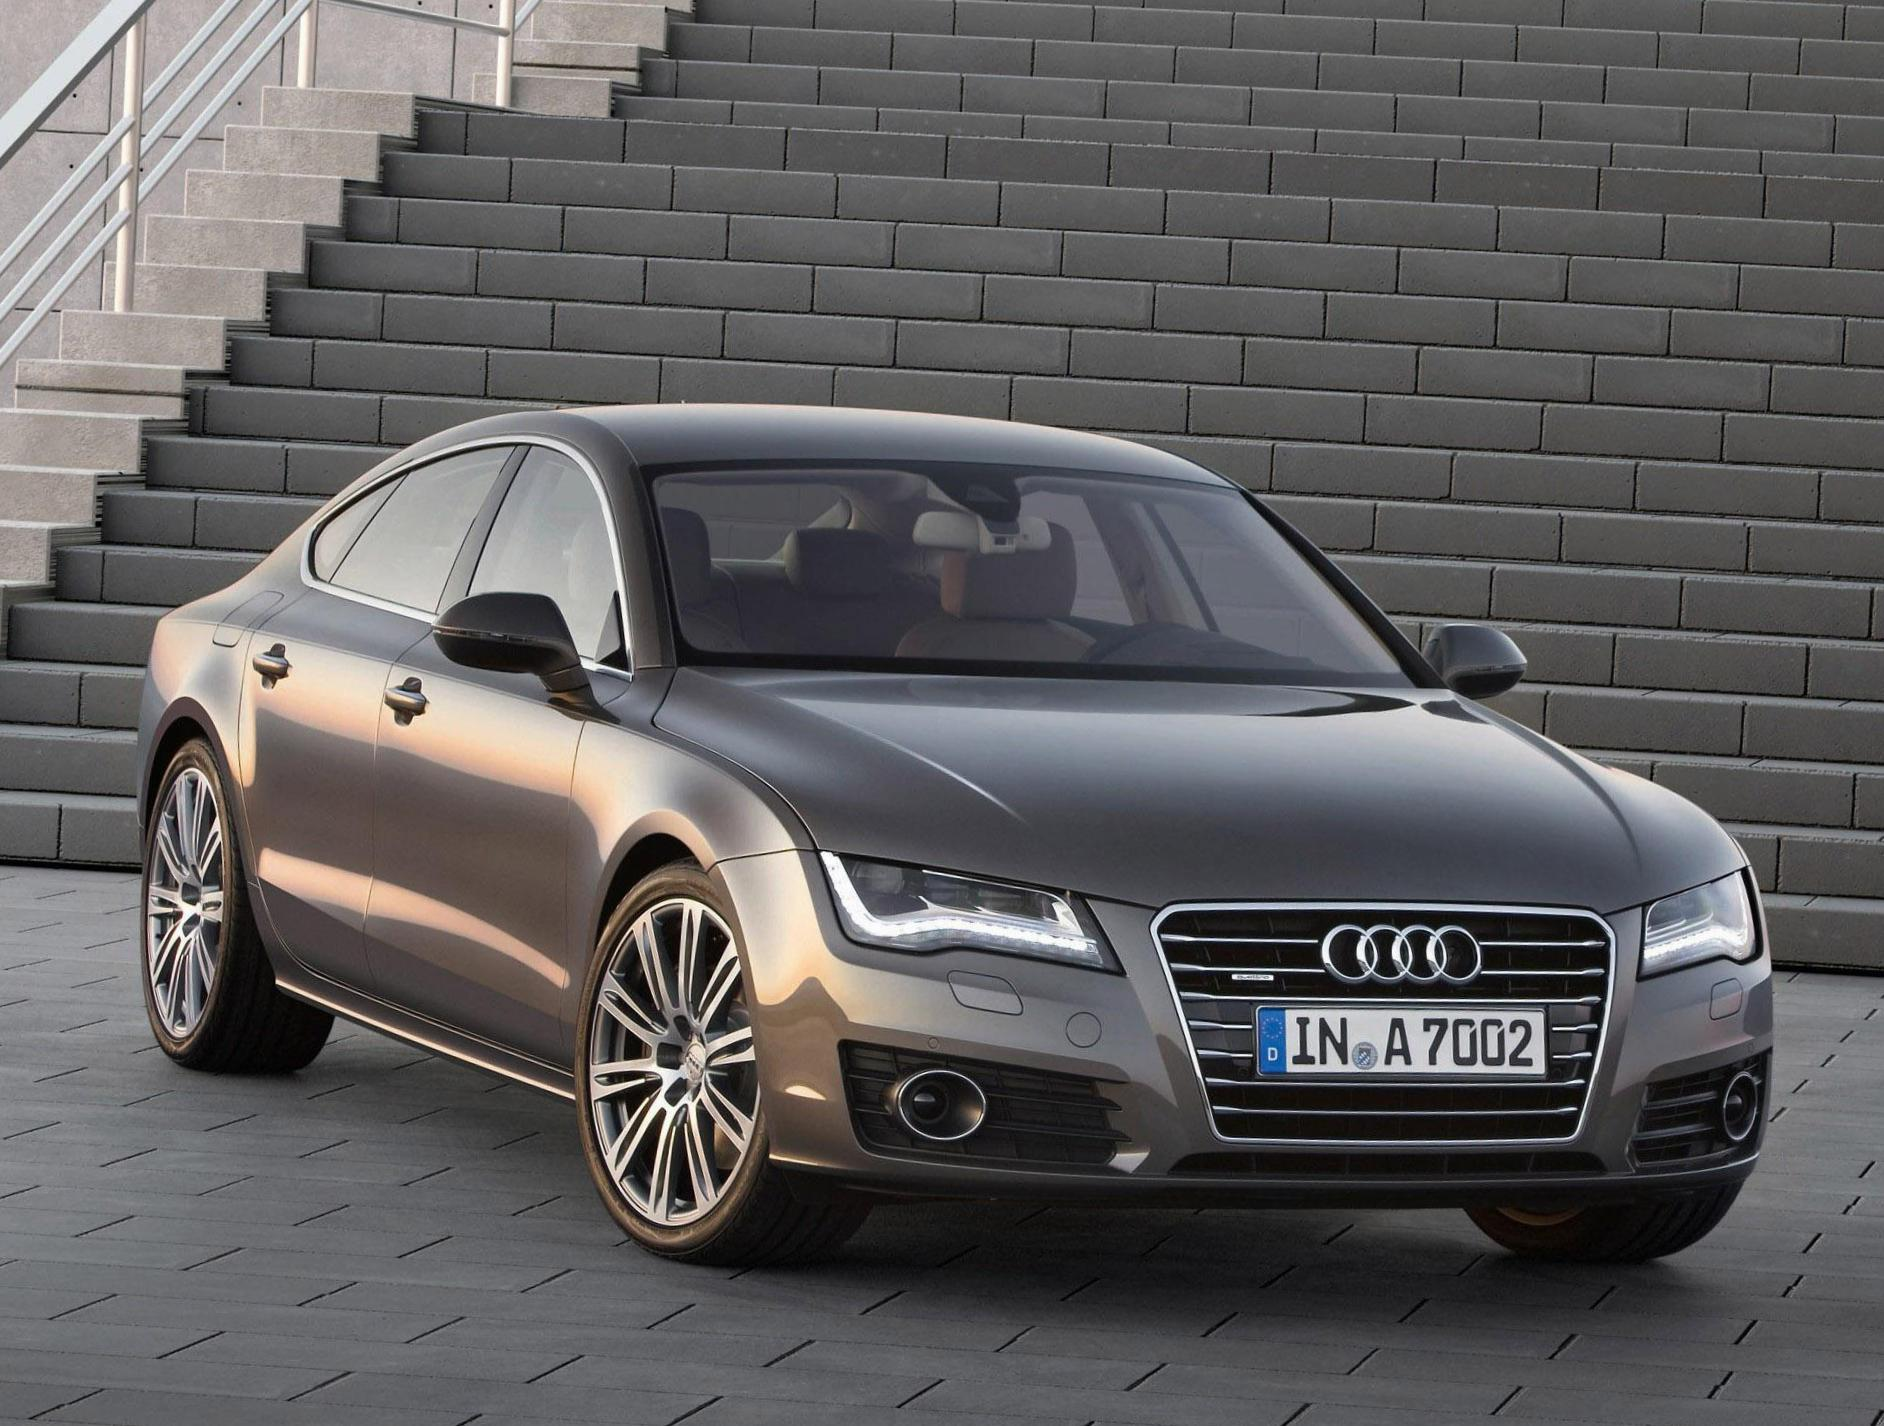 Audi A7 Sportback review wagon